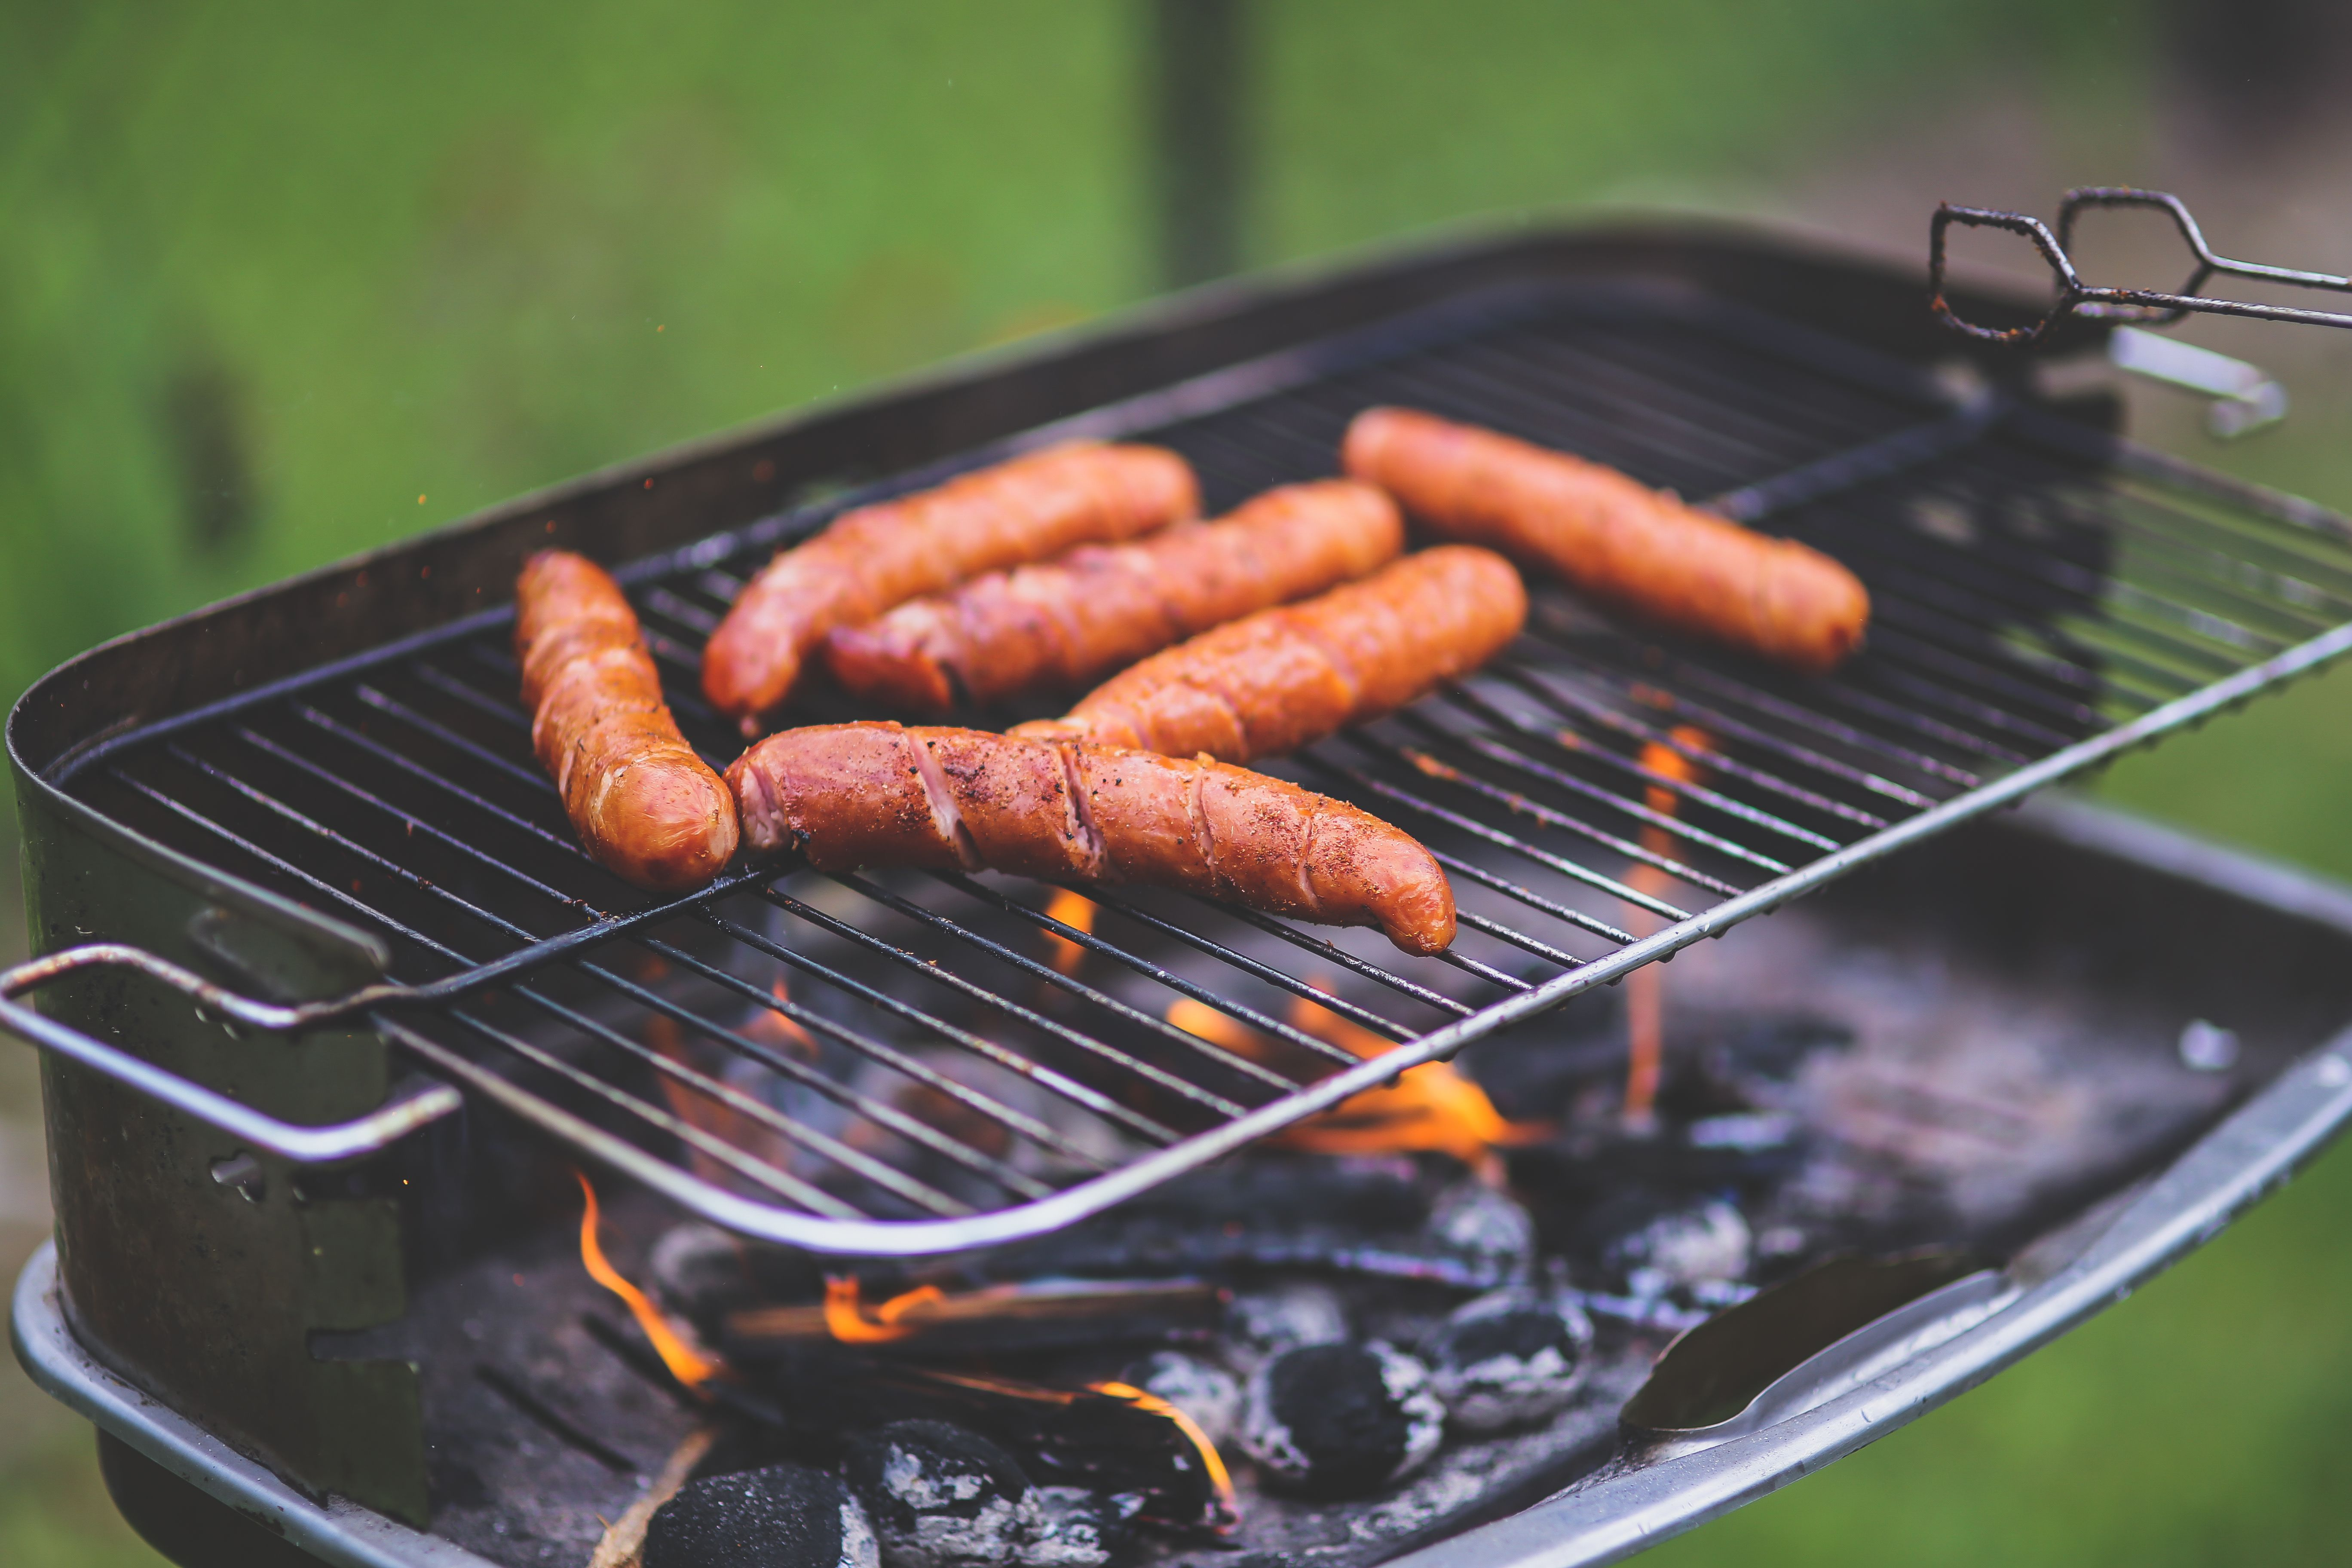 The Aldi Hot Dog Roundup Cooking Dinner Barbecued Meats